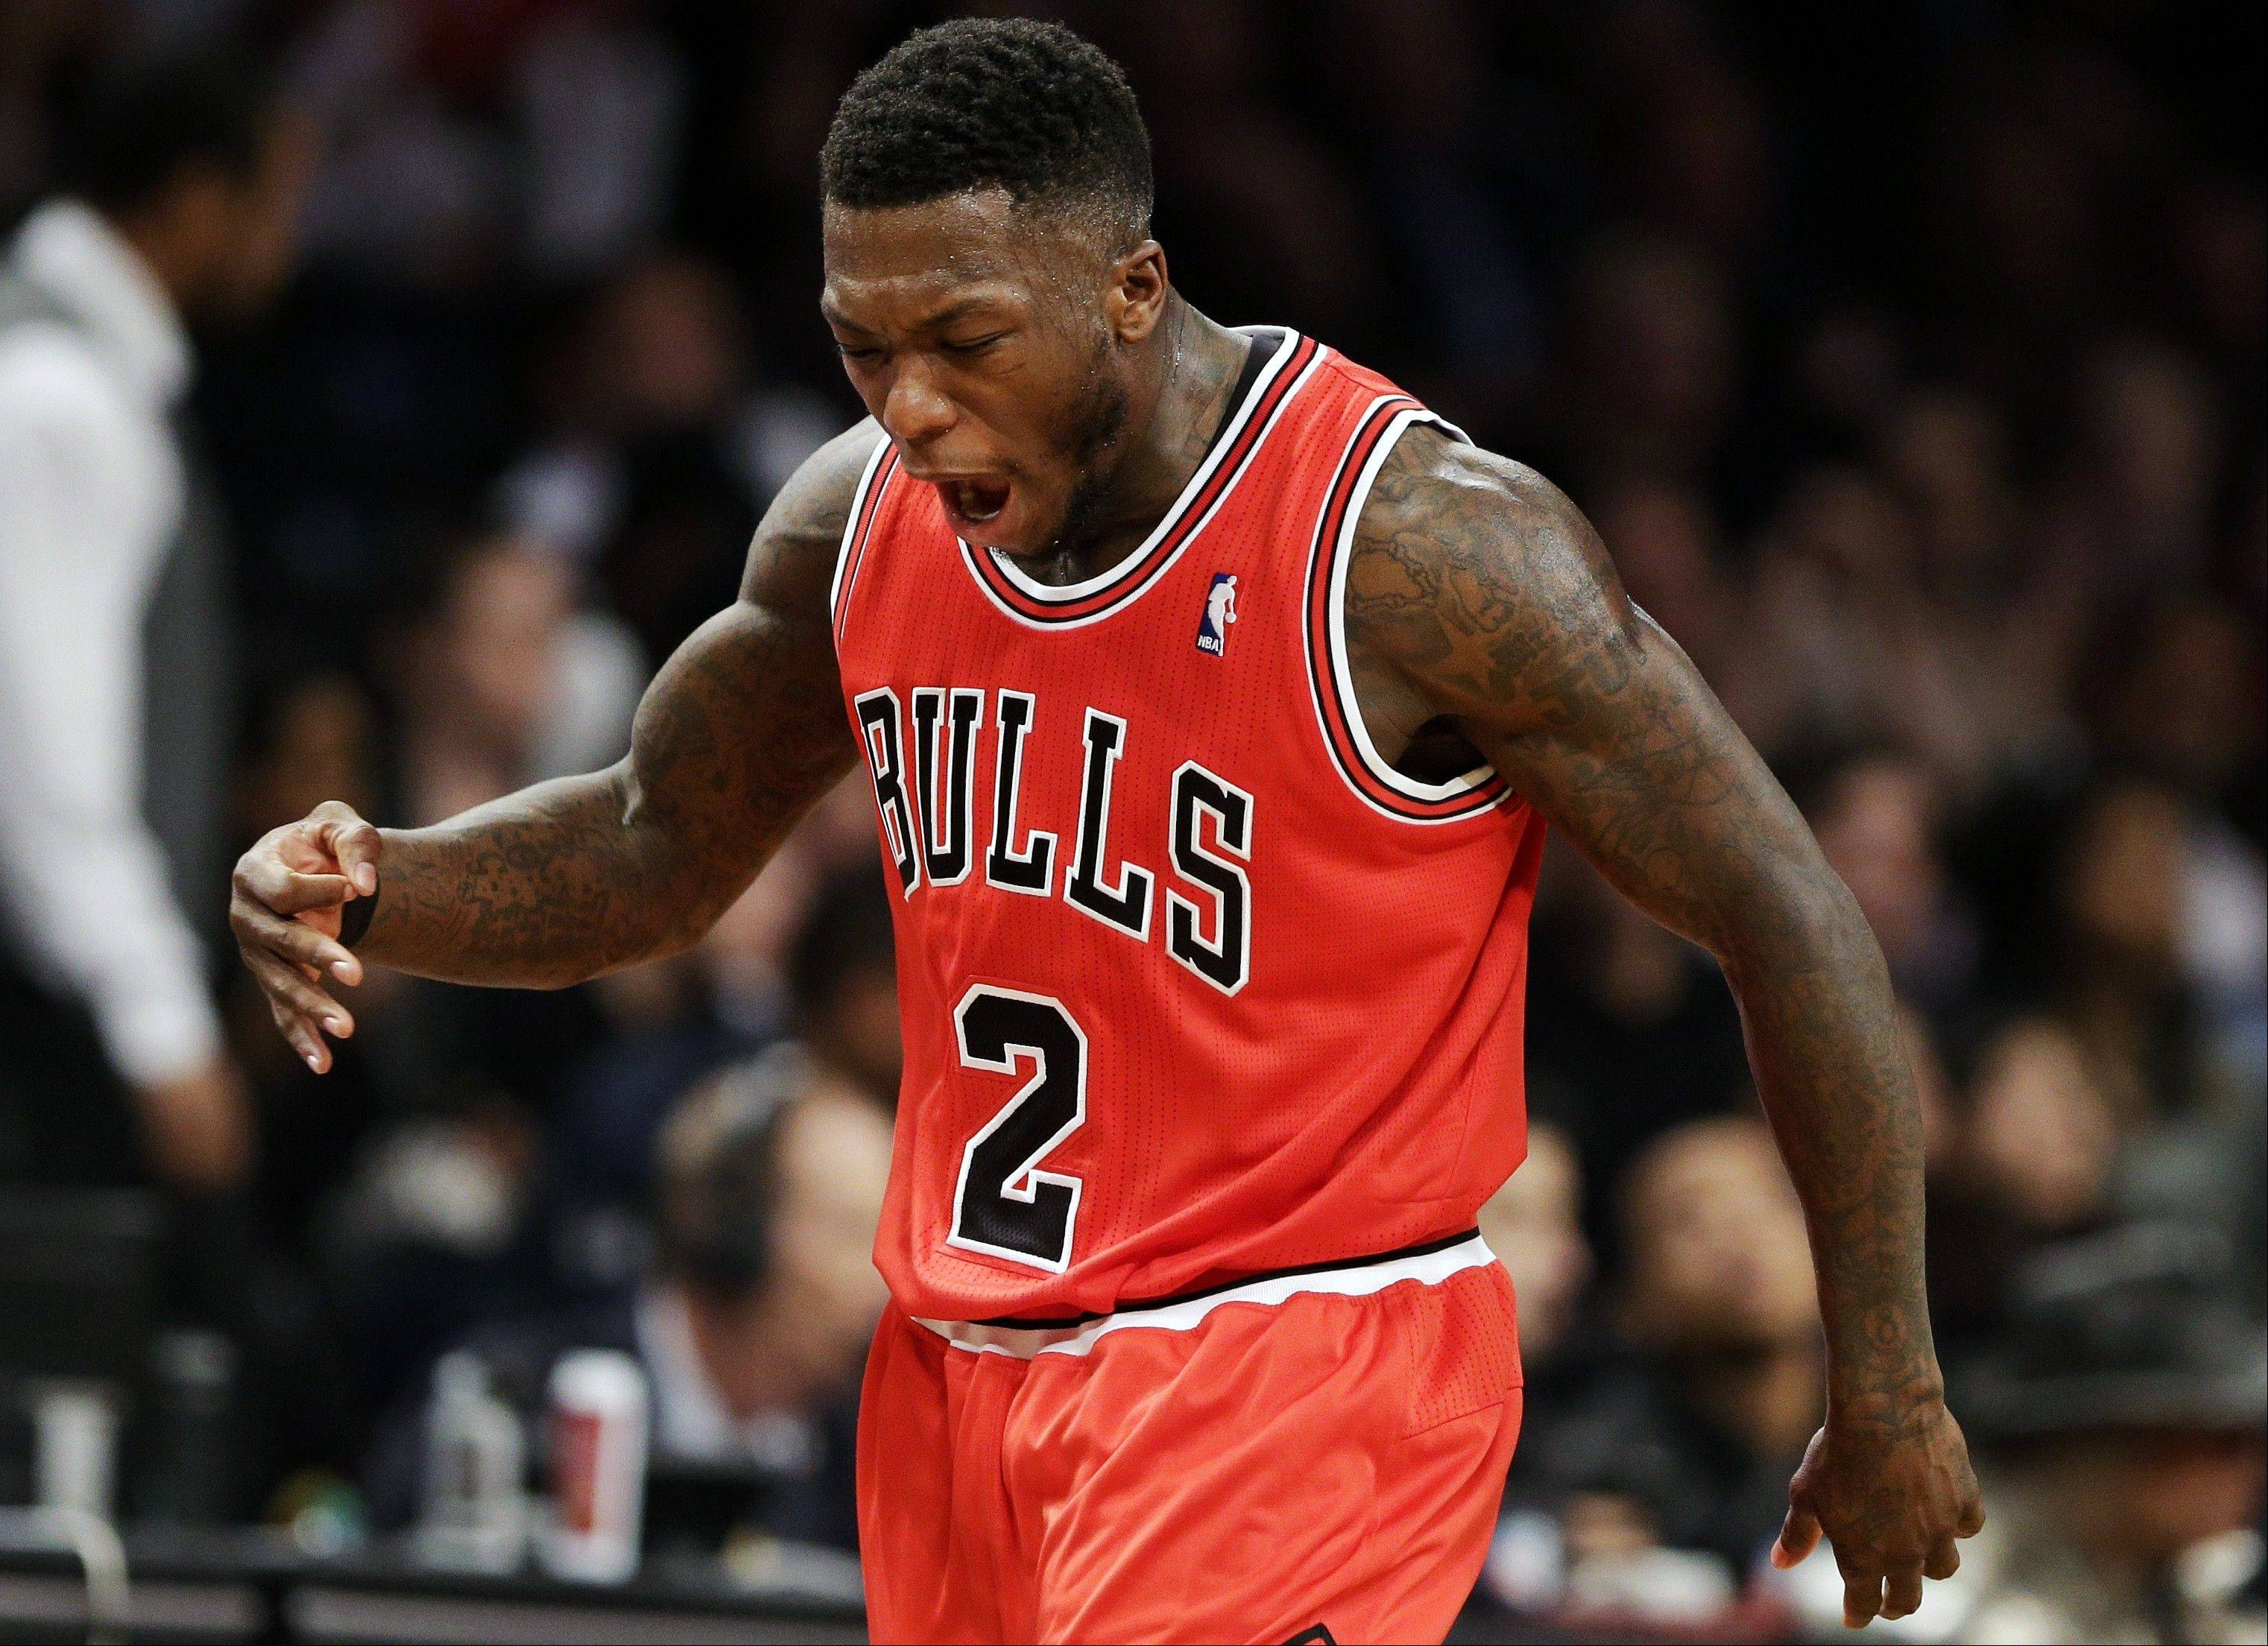 Chicago Bulls guard Nate Robinson reacts after scoring a 3-point shot against the Brooklyn Nets during the first half in Game 7 of their first-round NBA basketball playoff series in New York, Saturday, May 4, 2013.